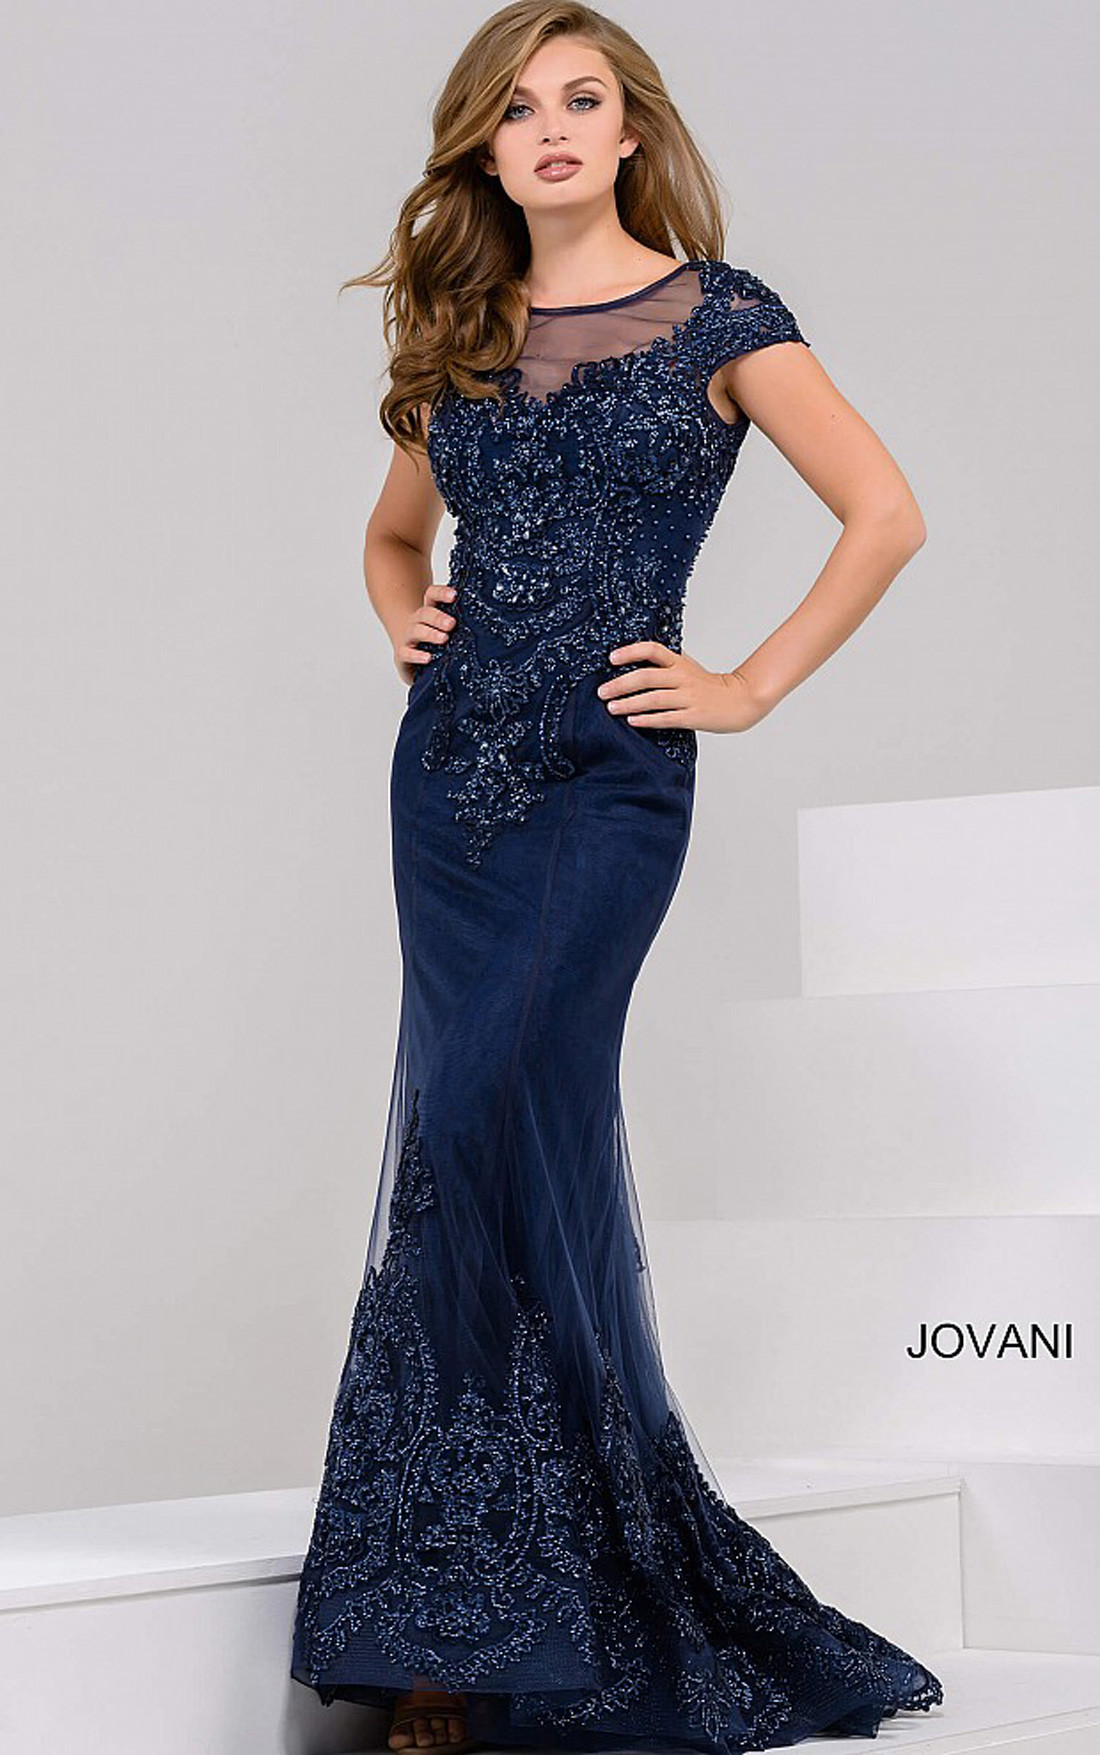 Jovani Dresses Womens Navy Embellished Cap Sleeves Sheer